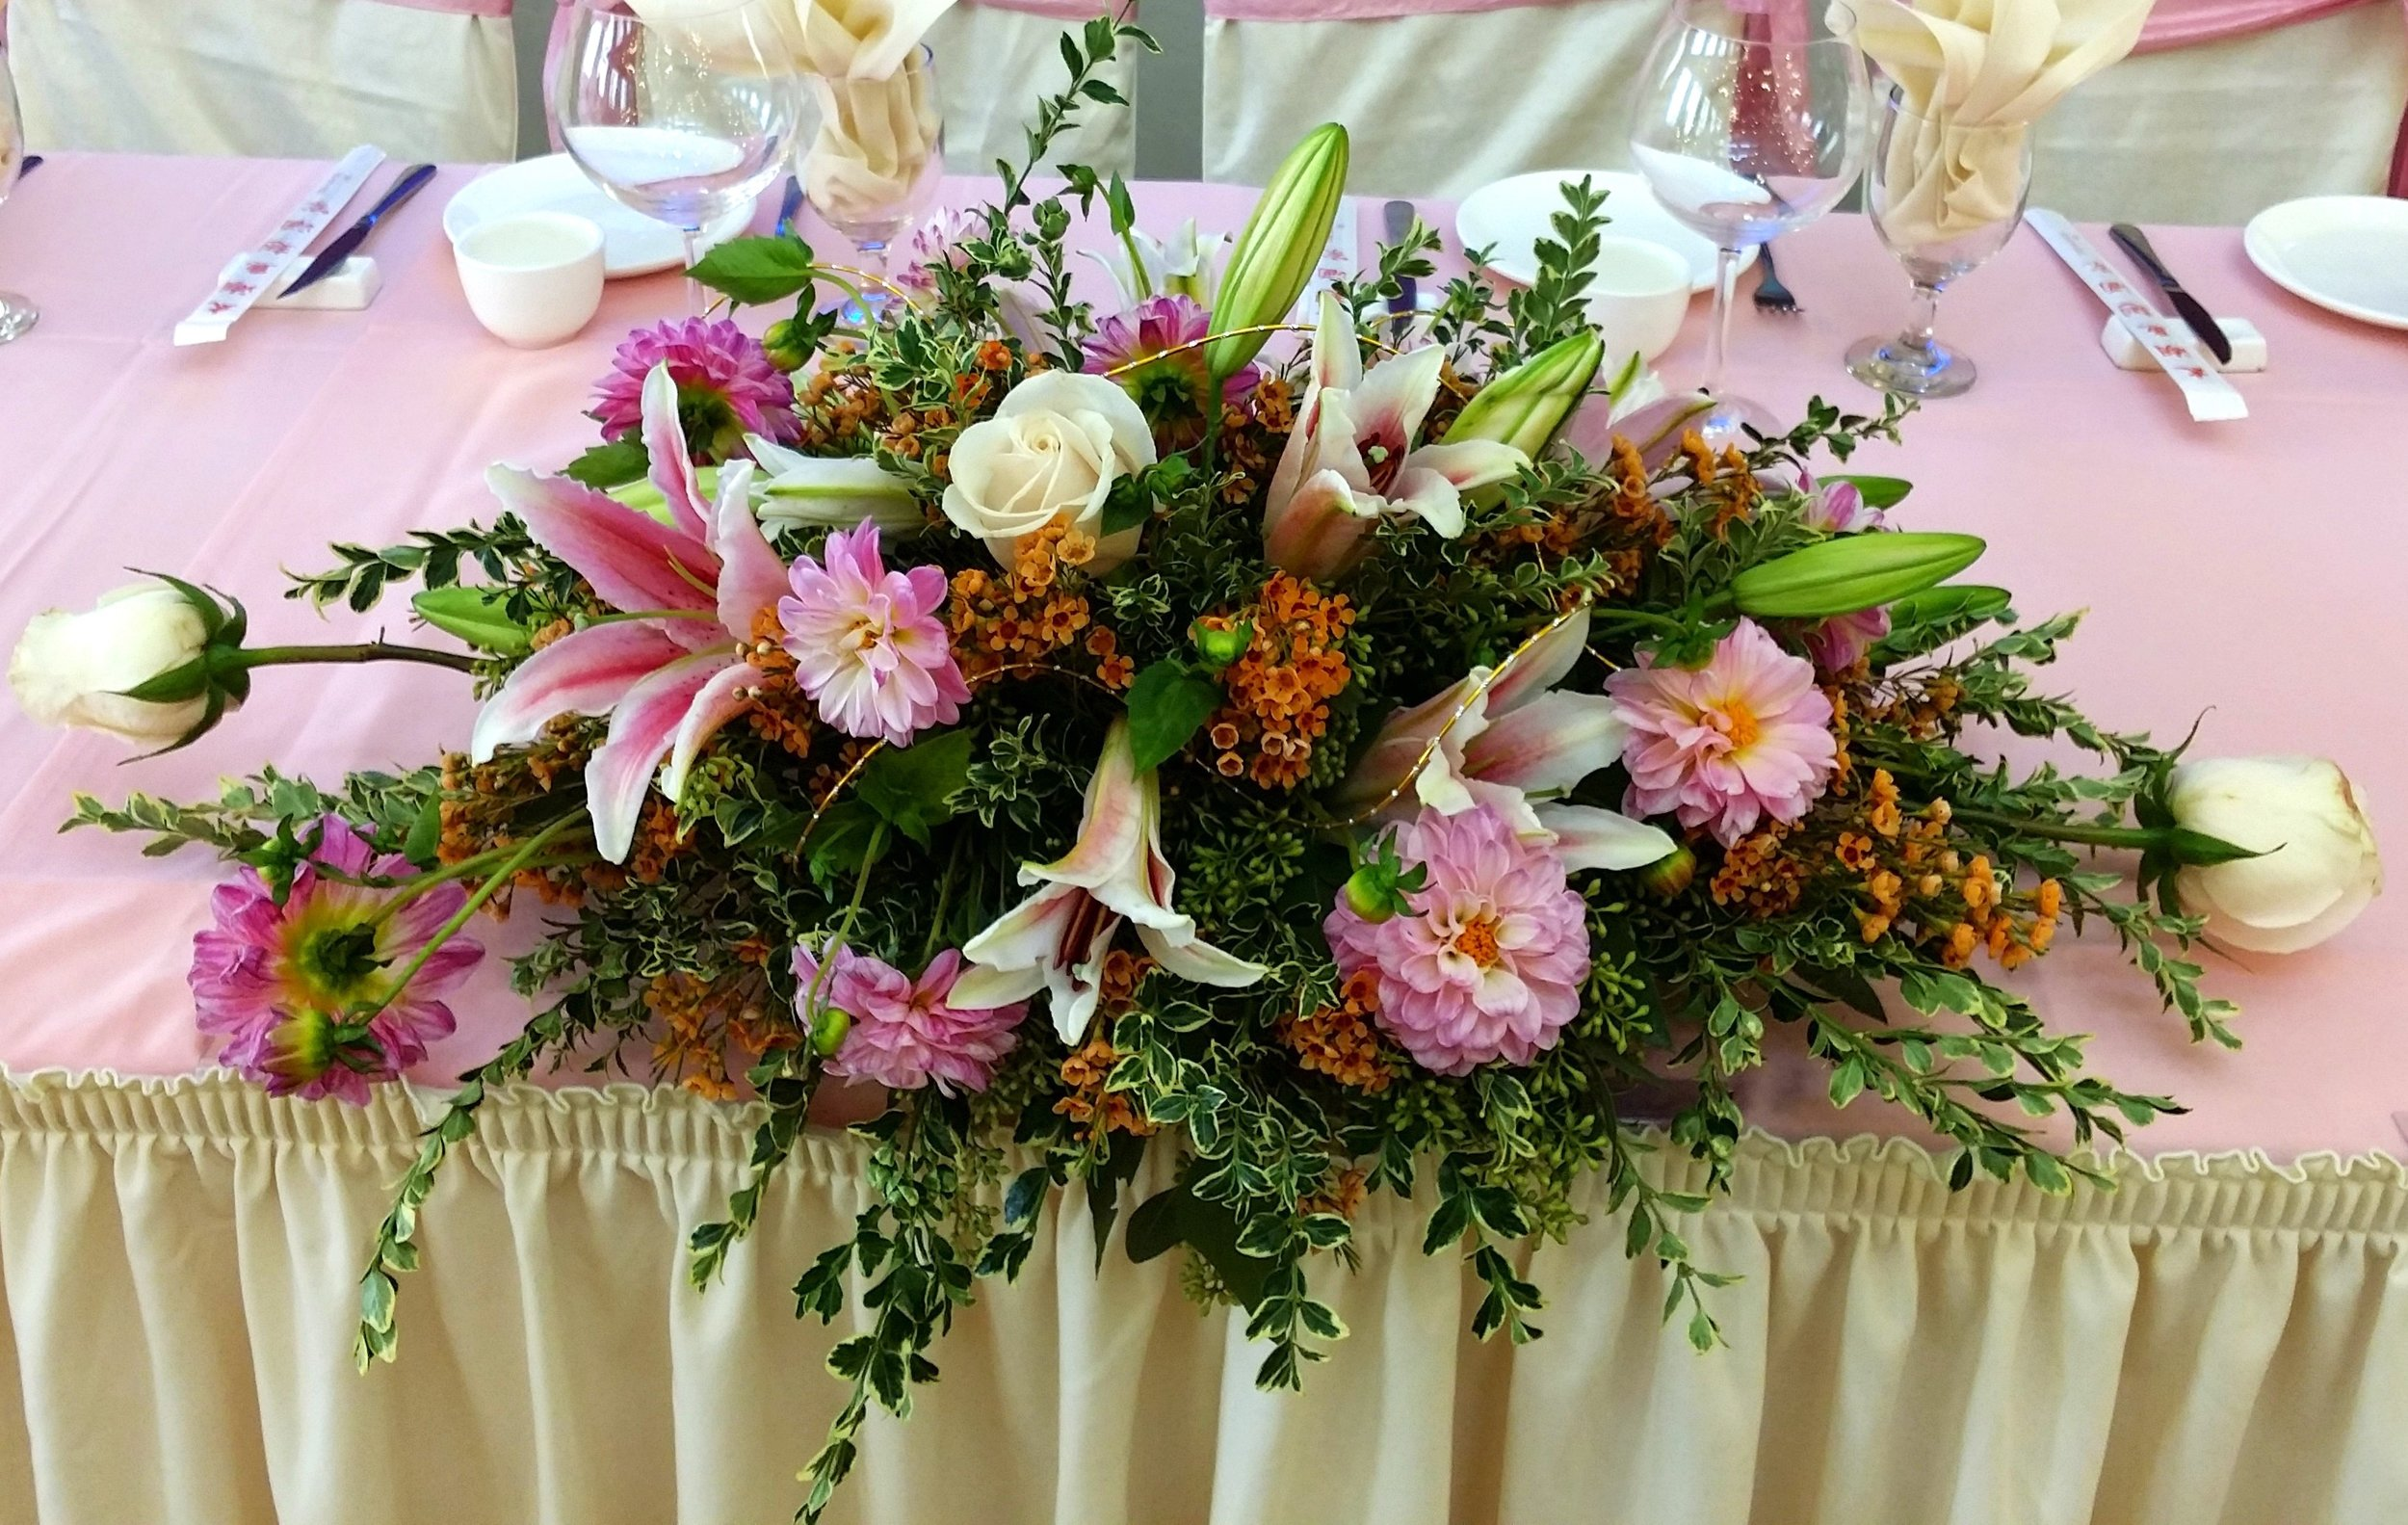 - We love how adding multiple types of flowers into a centerpiece draws different viewers eyes to different parts of the centerpiece. It also creates a lot of color and texture that you don't get with a single flower.